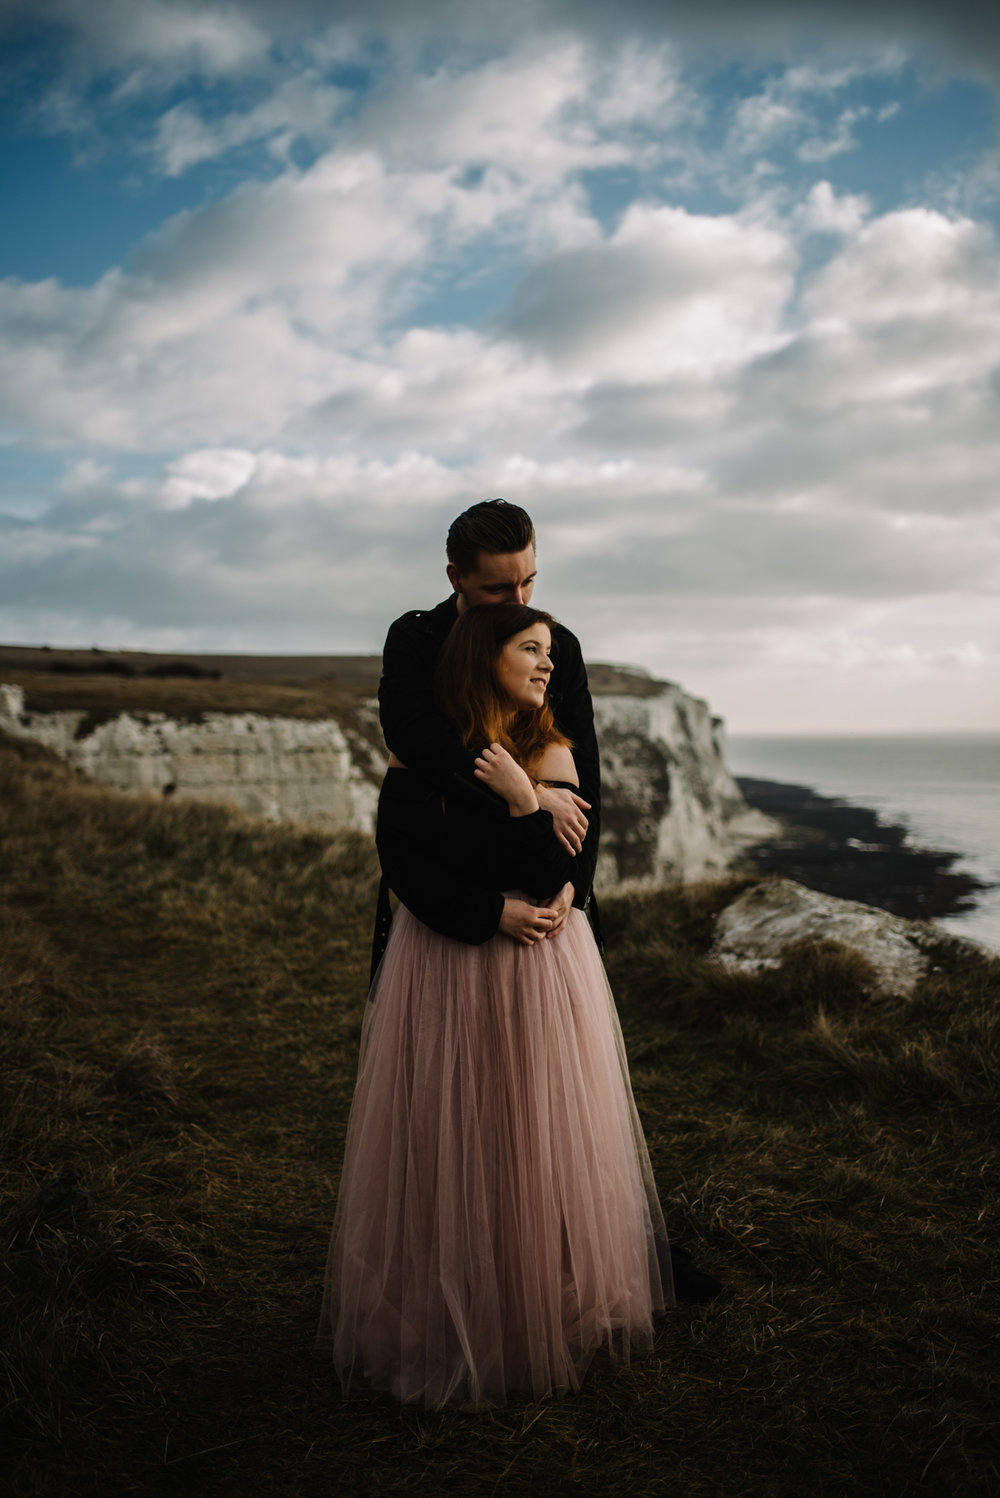 Jade+and+Dean+White+Cliffs+of+Dover+Couple+Session_8.jpg